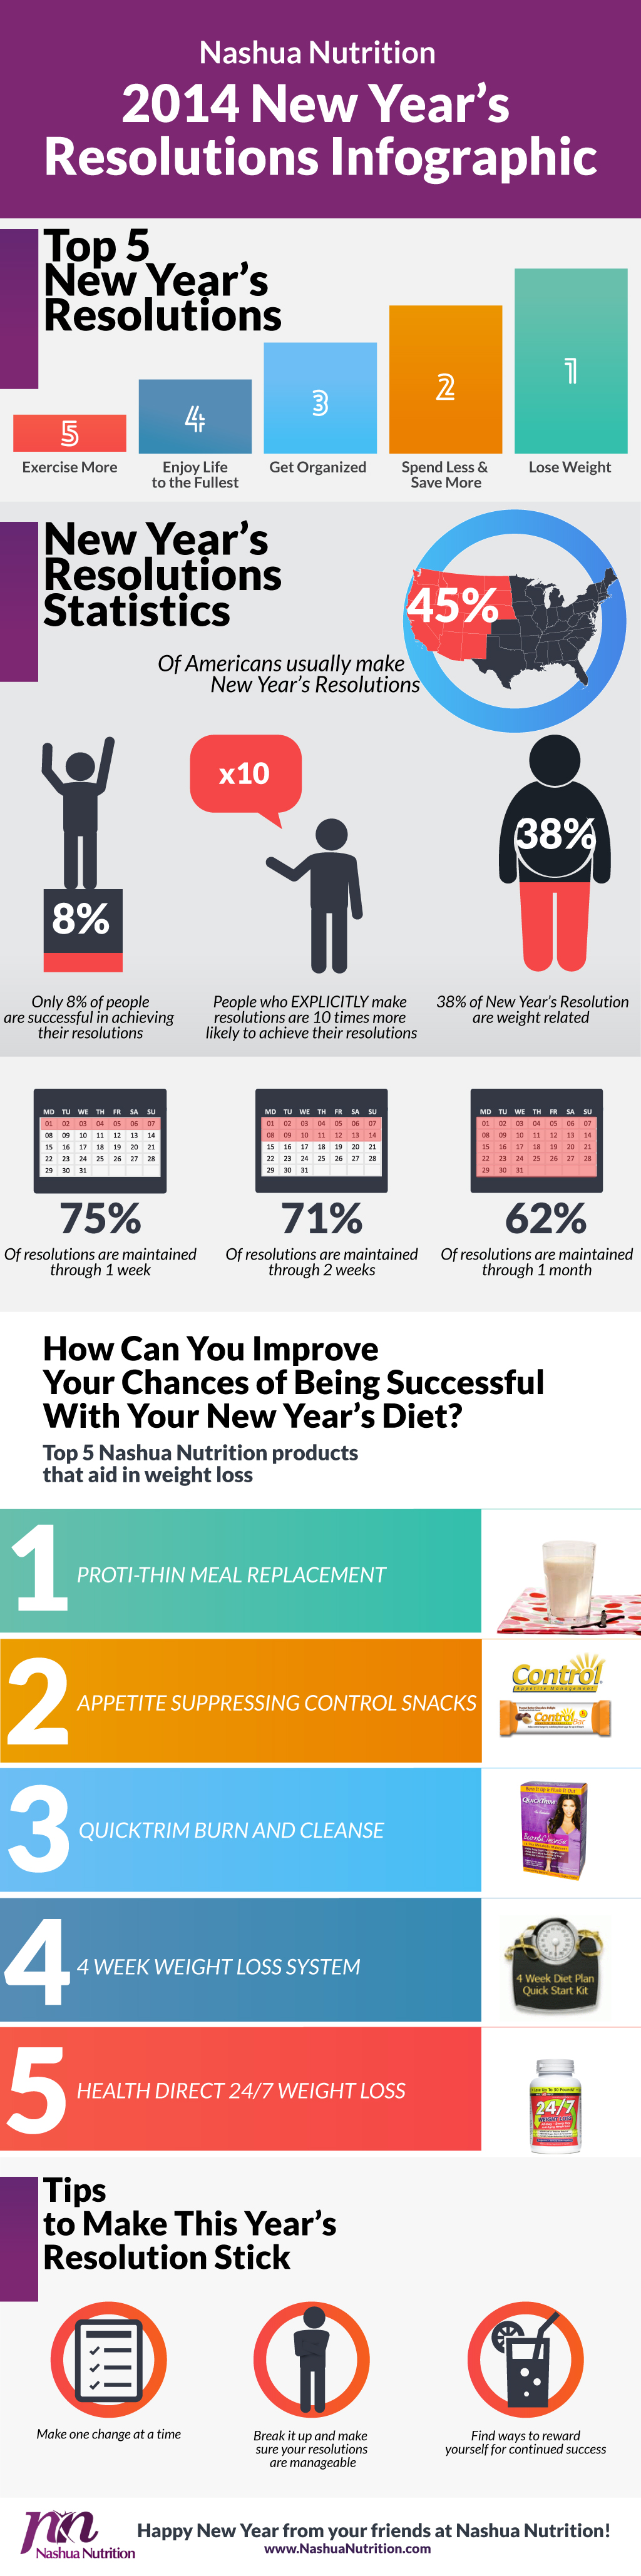 01 2014-new-years-resolution-infographic-nashua-nutrition